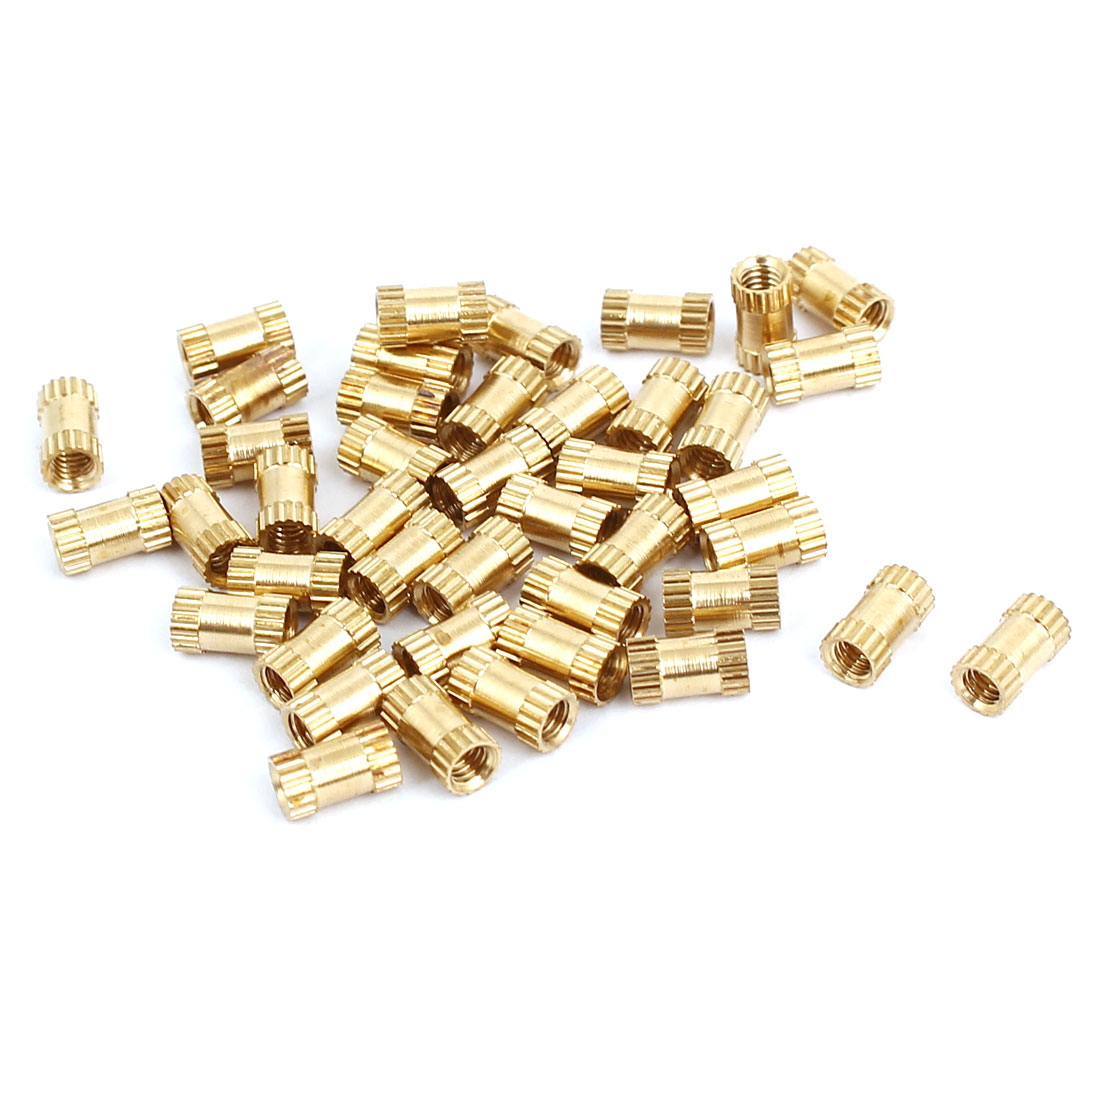 M2.5x6mmx3.5mm Female Threaded Brass Knurled Insert Embedded Nuts Gold Tone 40pcs